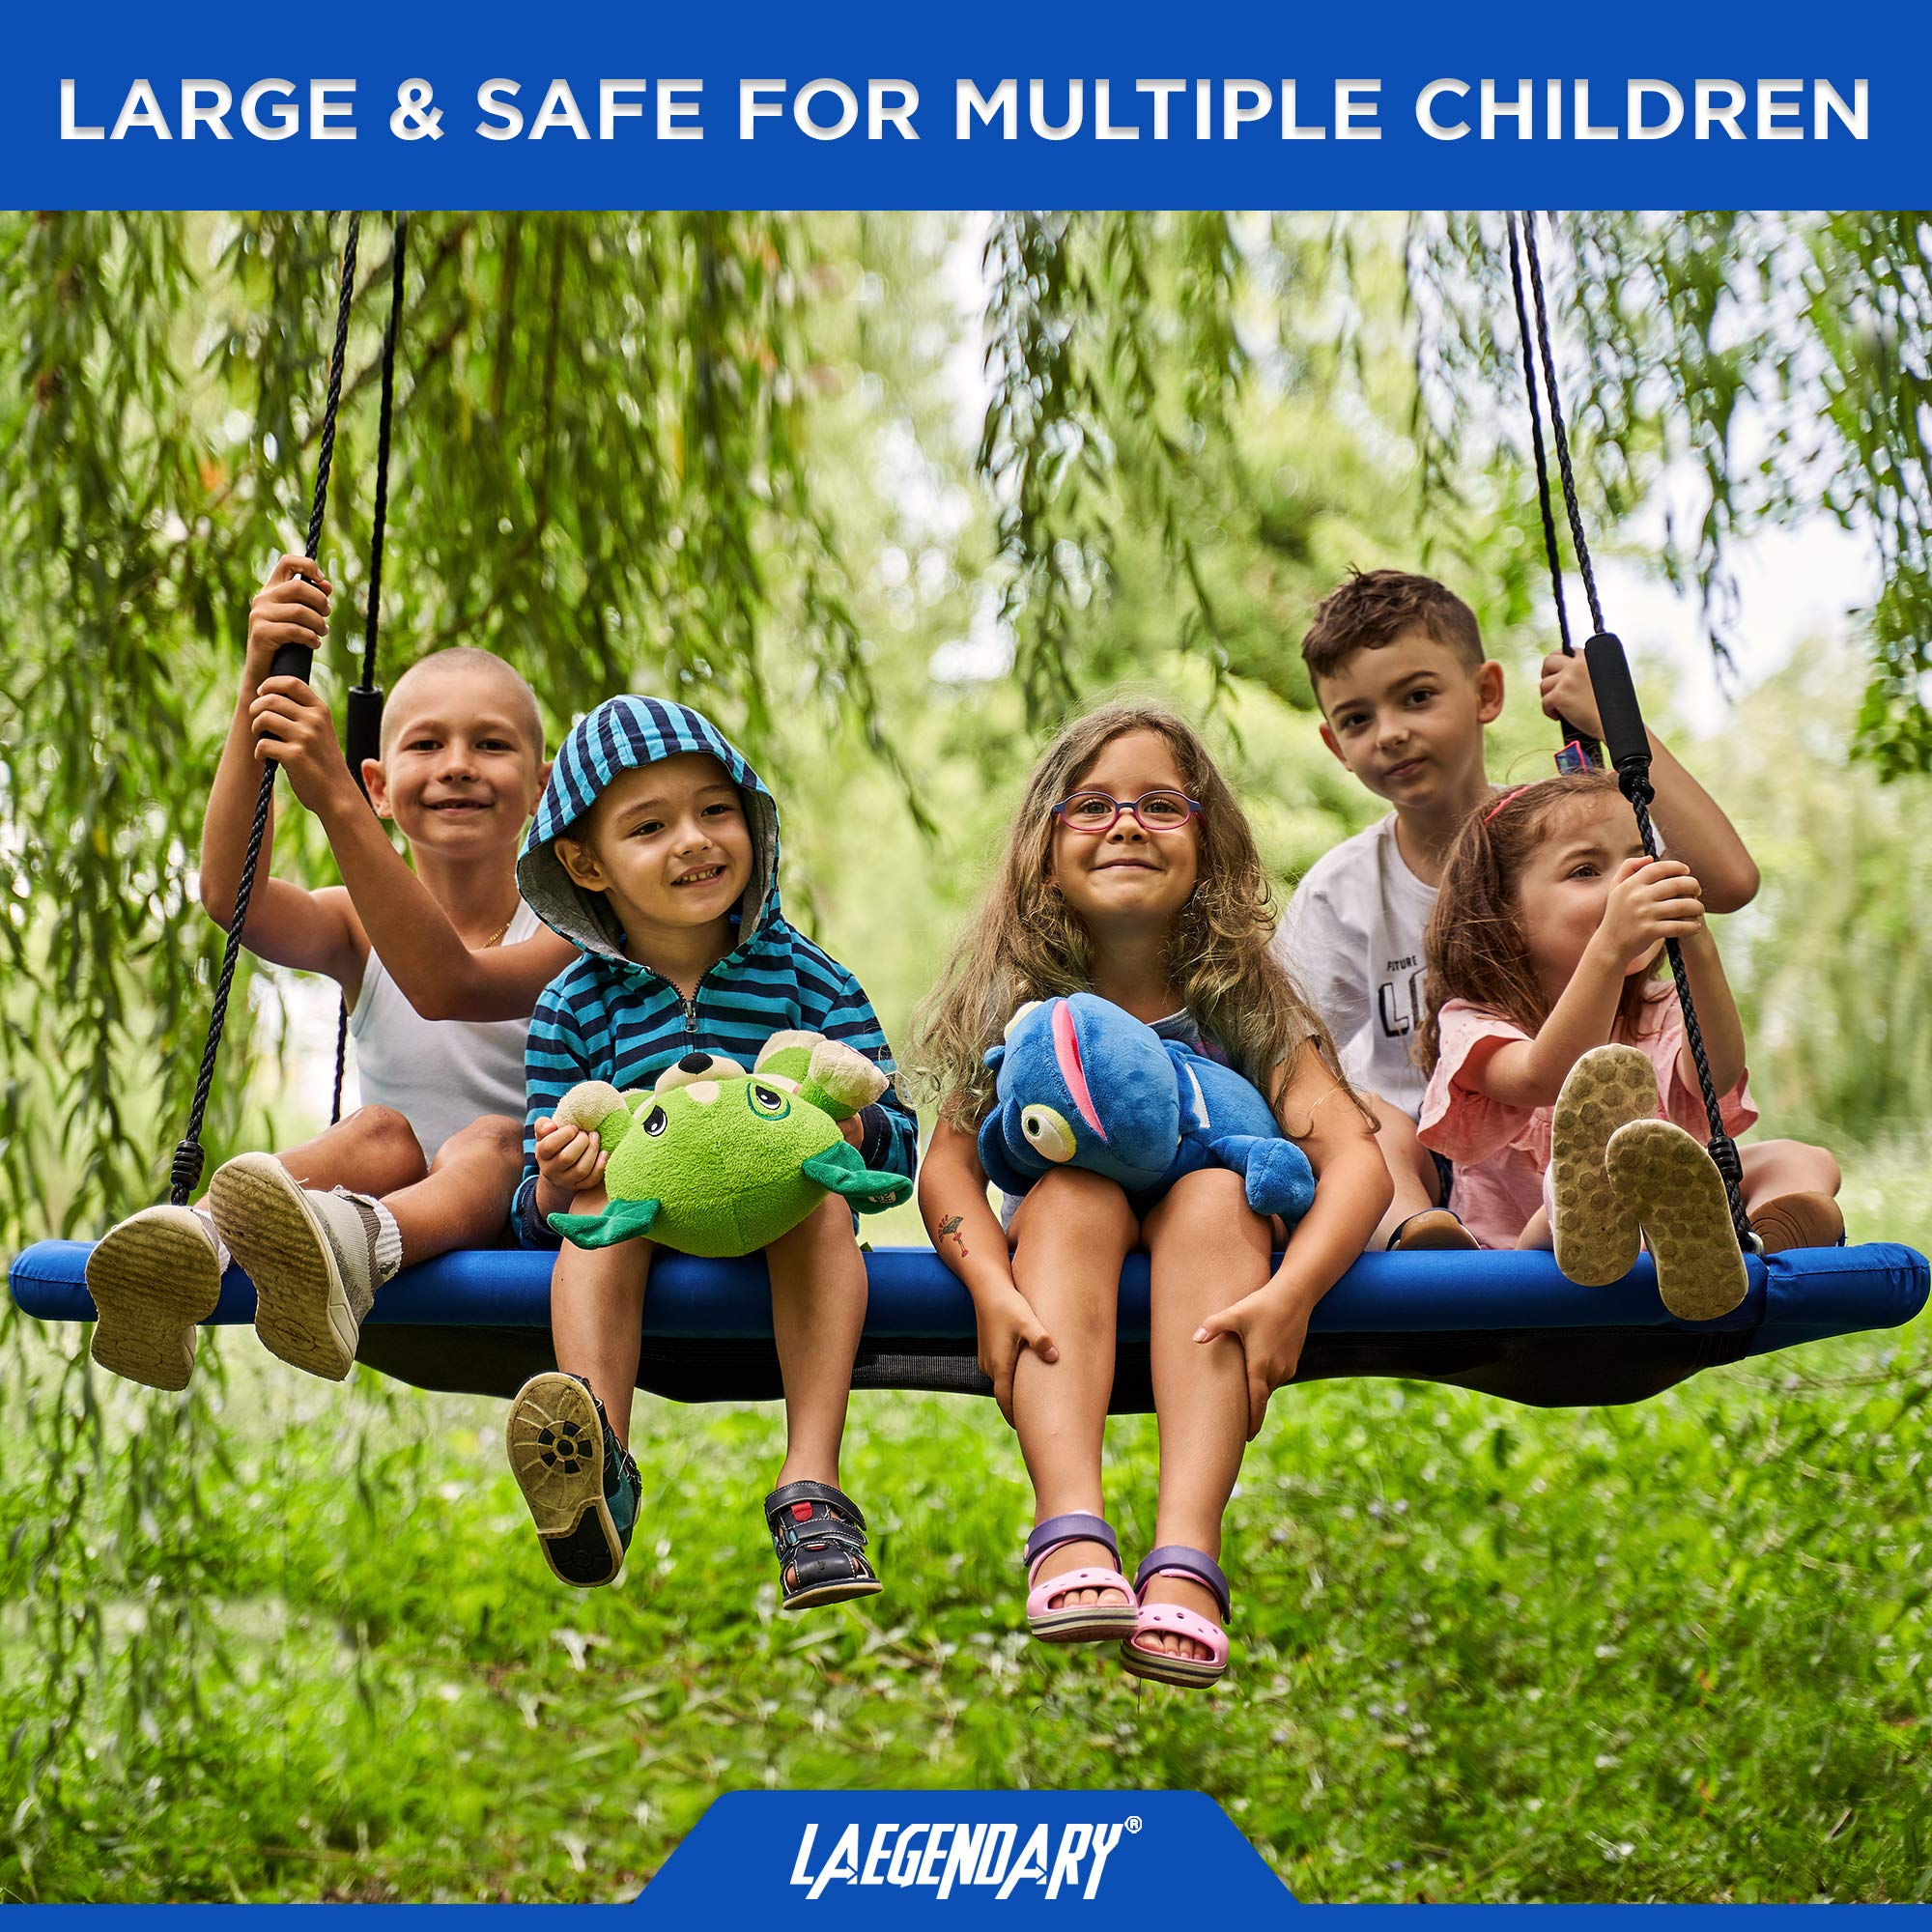 60'' Giant Platform Tree Swing for Kids and Adults | Flying Outdoor Indoor Saucer Hammock | Surf Tire Swingset Accessories Toys | 2 Tree Straps, 2 Carabiners, 1 Swivel | 600 Lb Capacity Yard Swings Set by LÆGENDARY (Image #5)